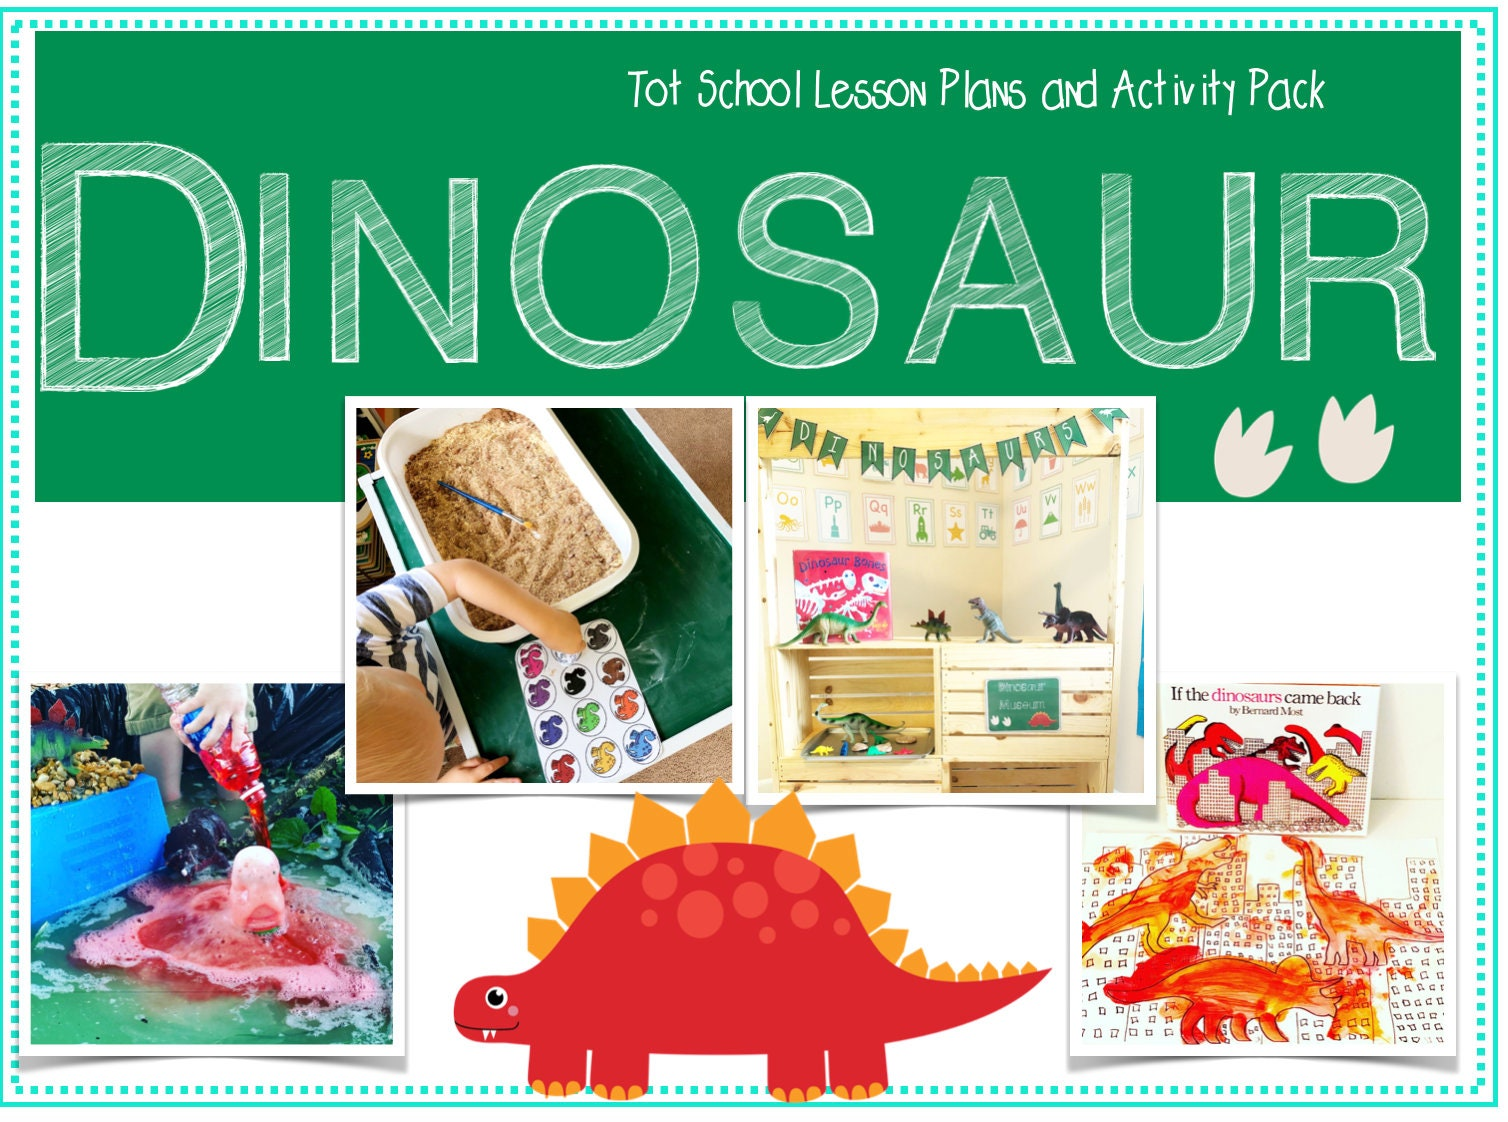 Tot School: Dinosaur Lesson Plans and Activity Pack